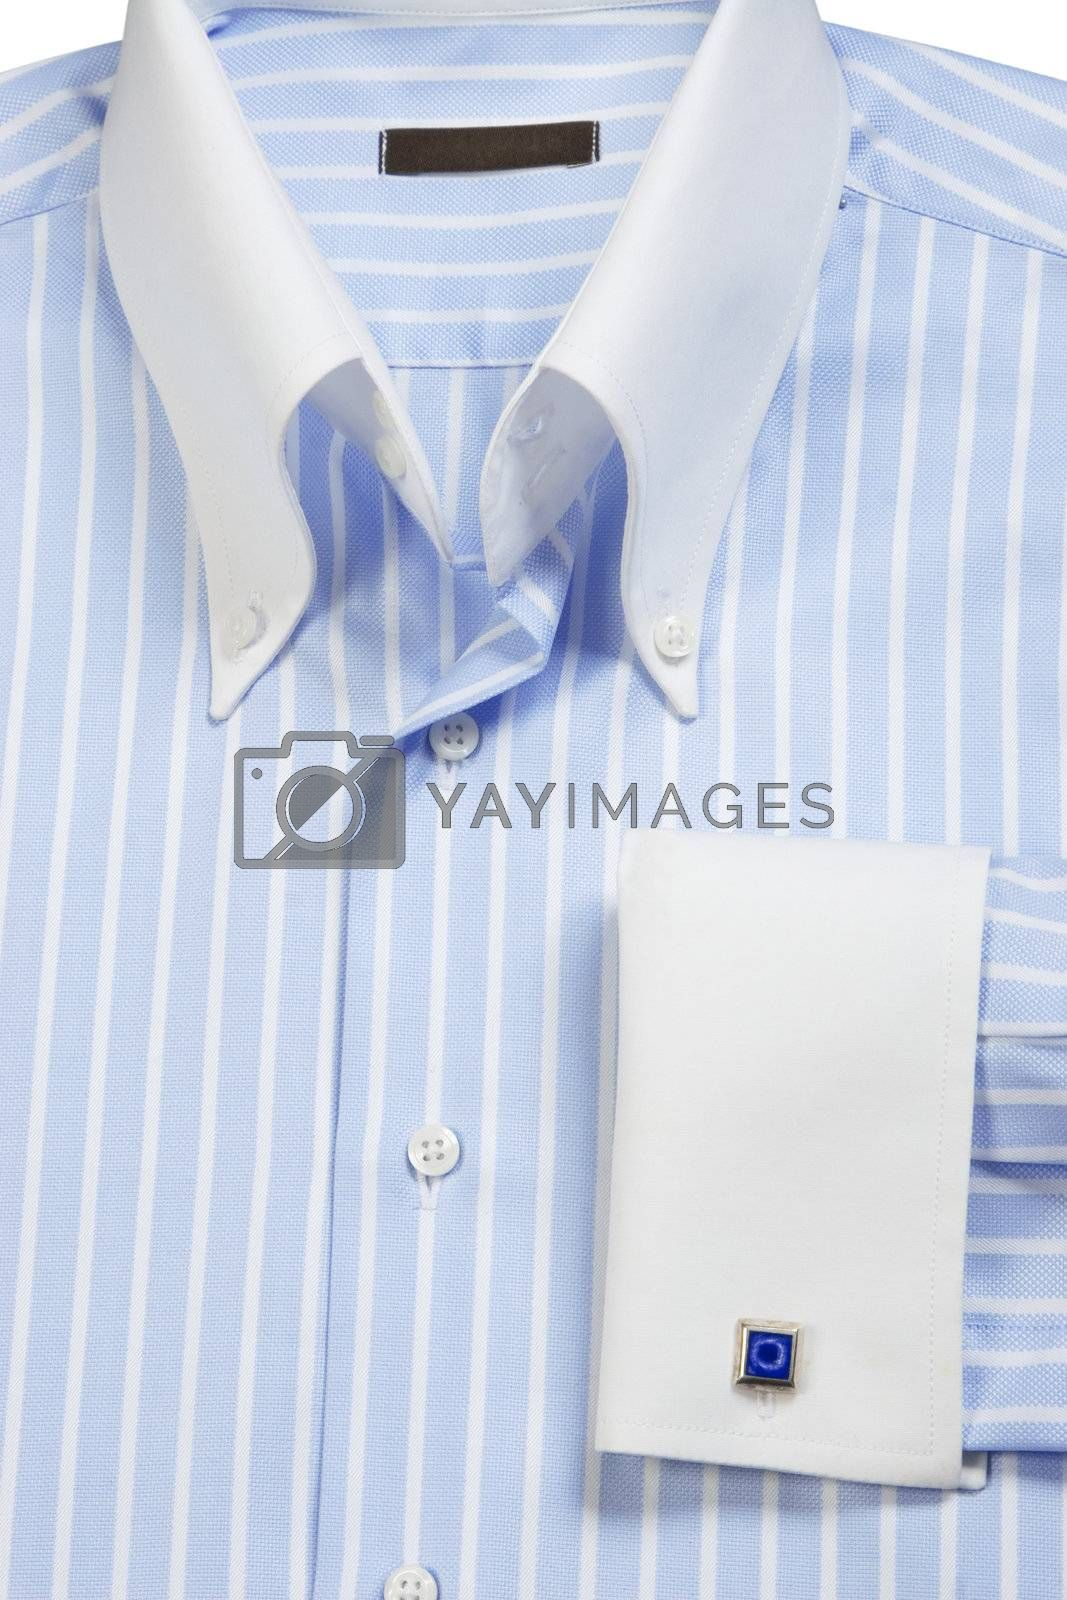 Close-up of cuff-link on blue striped shirt